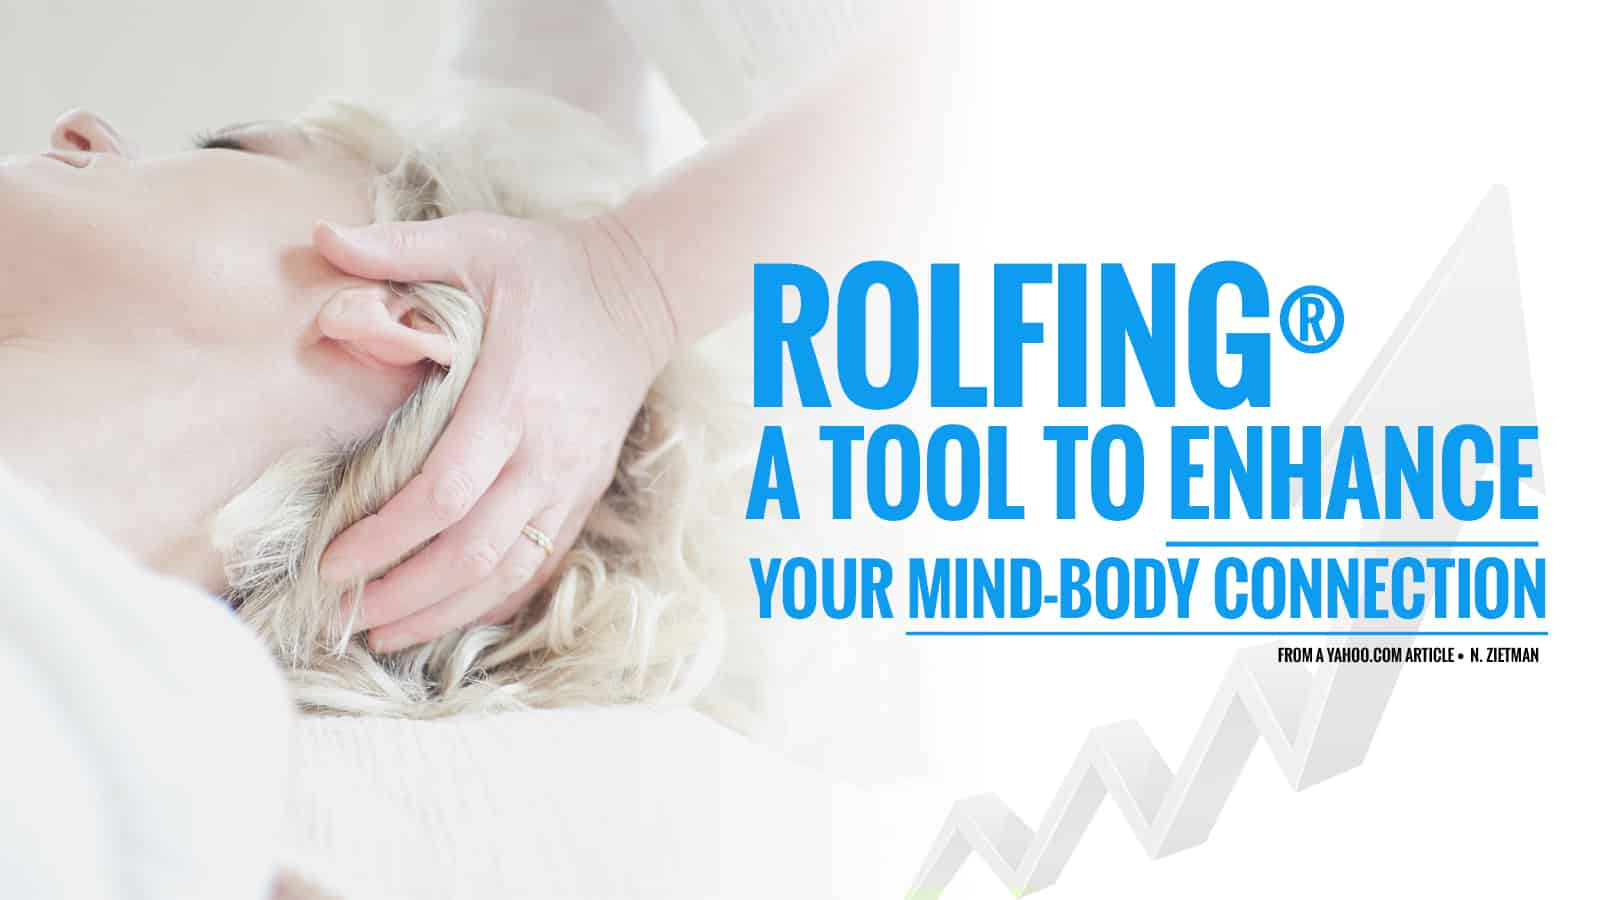 ROLFING ® A TOOL TO ENHANCE YOUR MIND-BODY CONNECTION